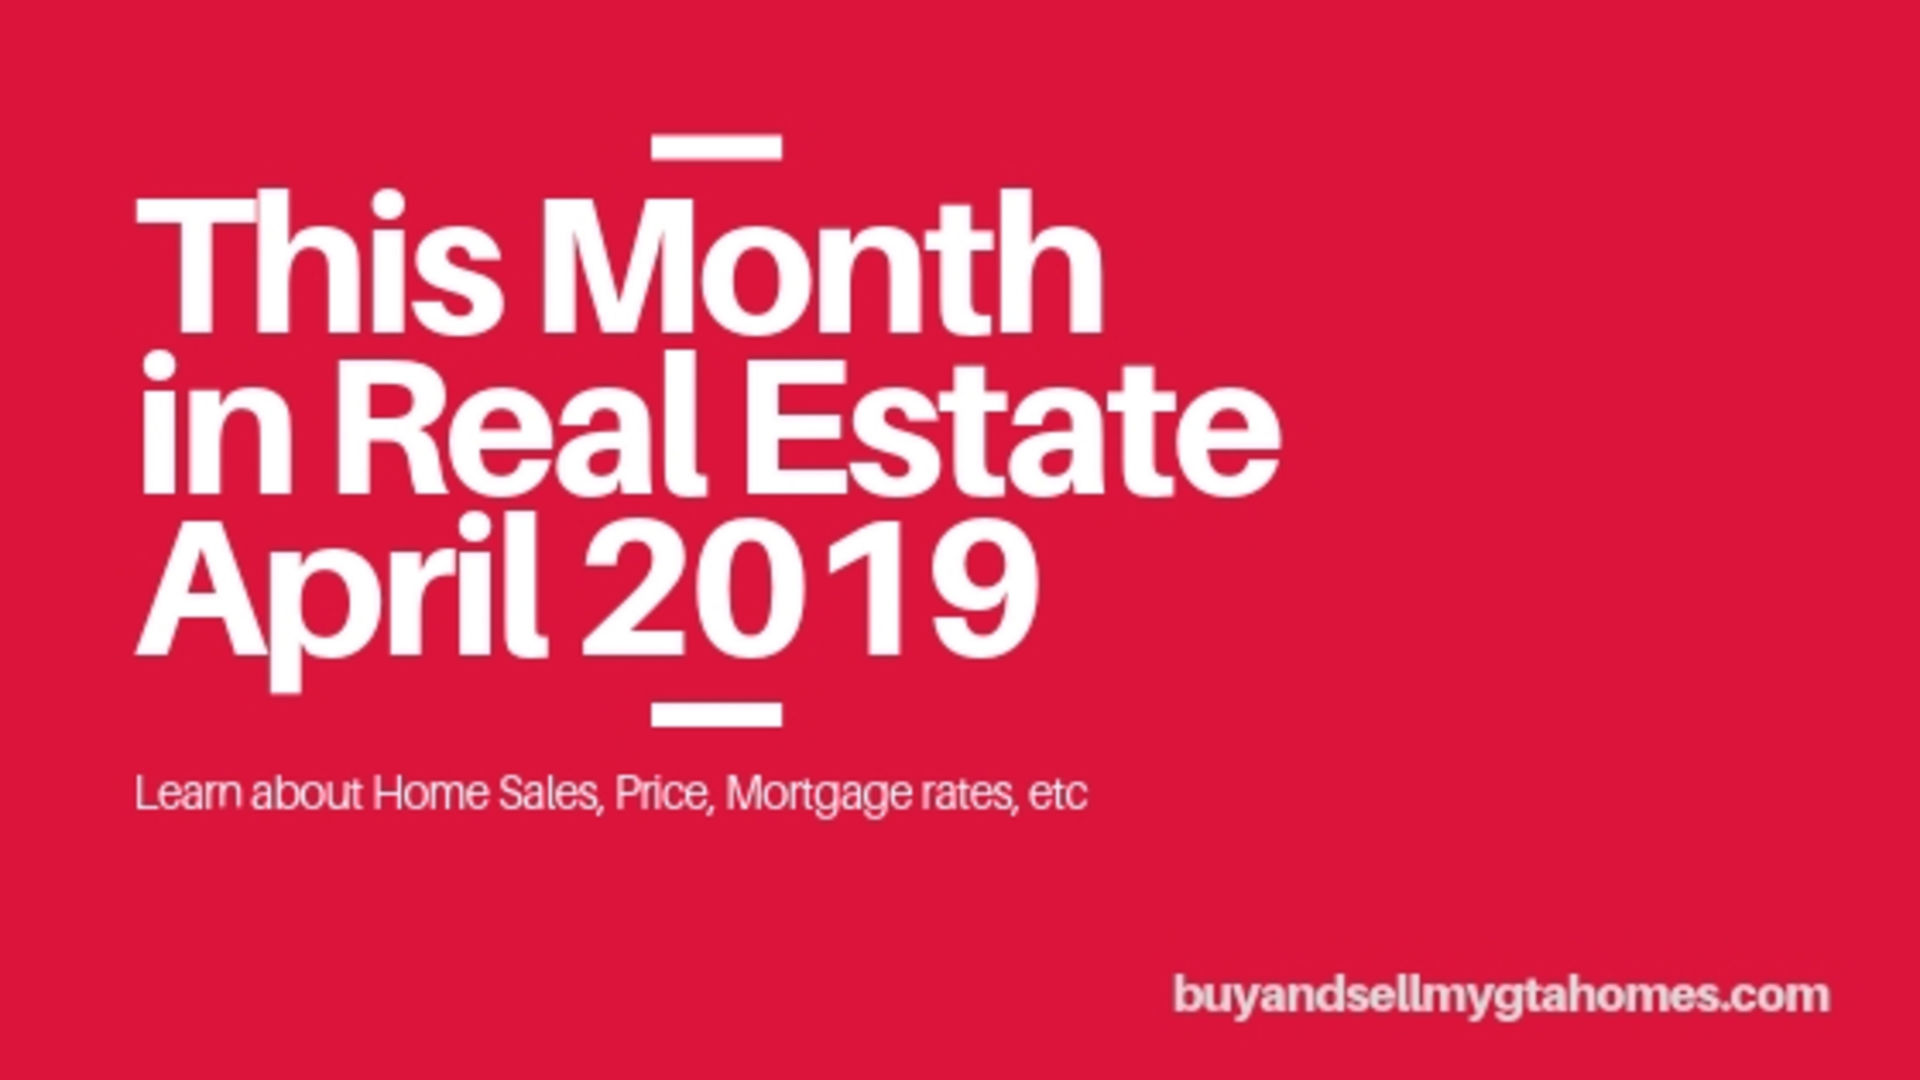 This Month is Real Estate – April 2019